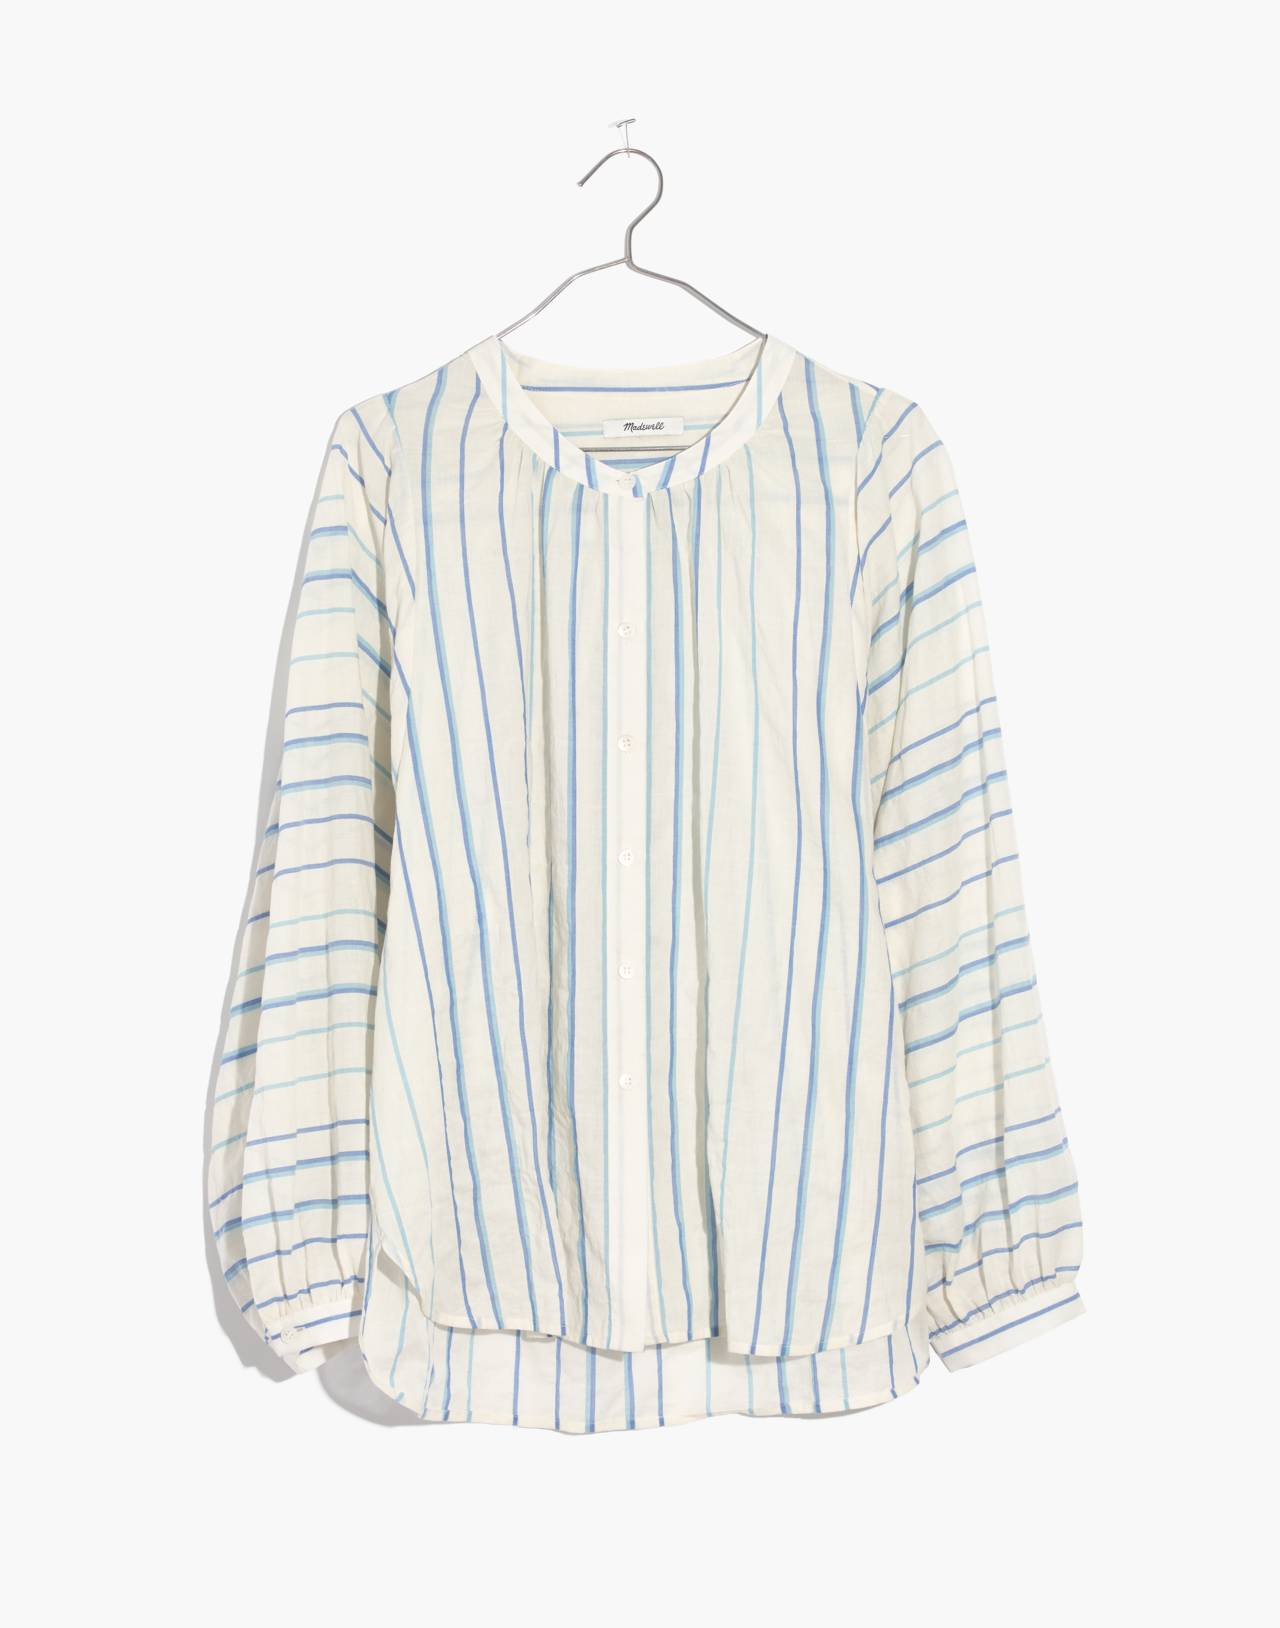 Peasant Top in Stripe in pale parchment jessie image 4